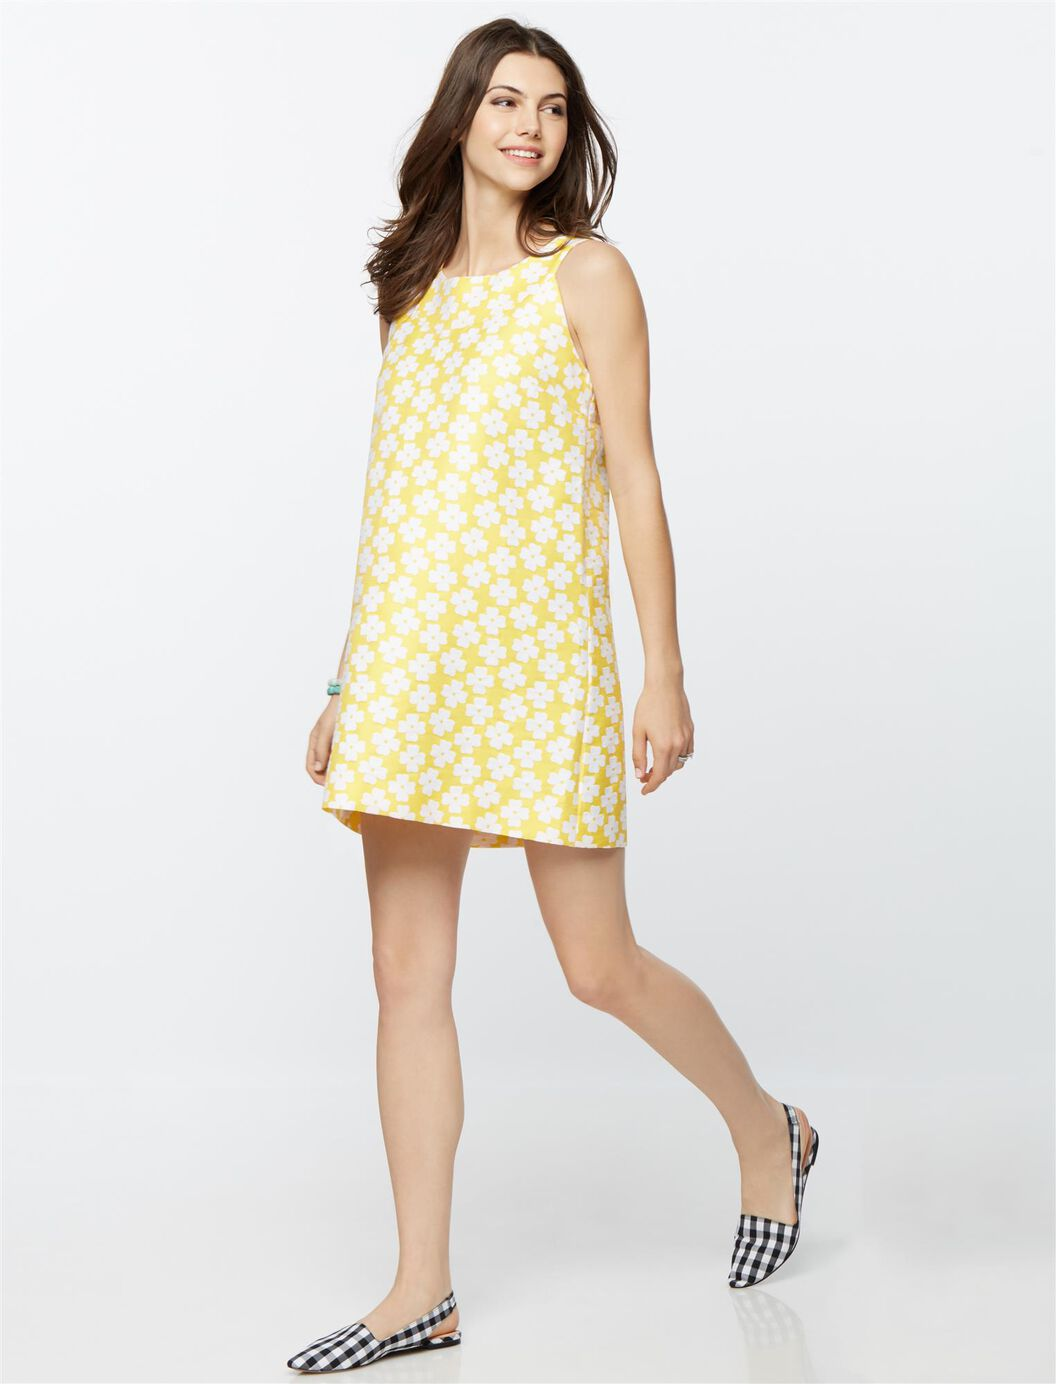 Madderson london web only daisy print maternity dress a pea in madderson london web only daisy print maternity dress yellow daisy print ombrellifo Image collections